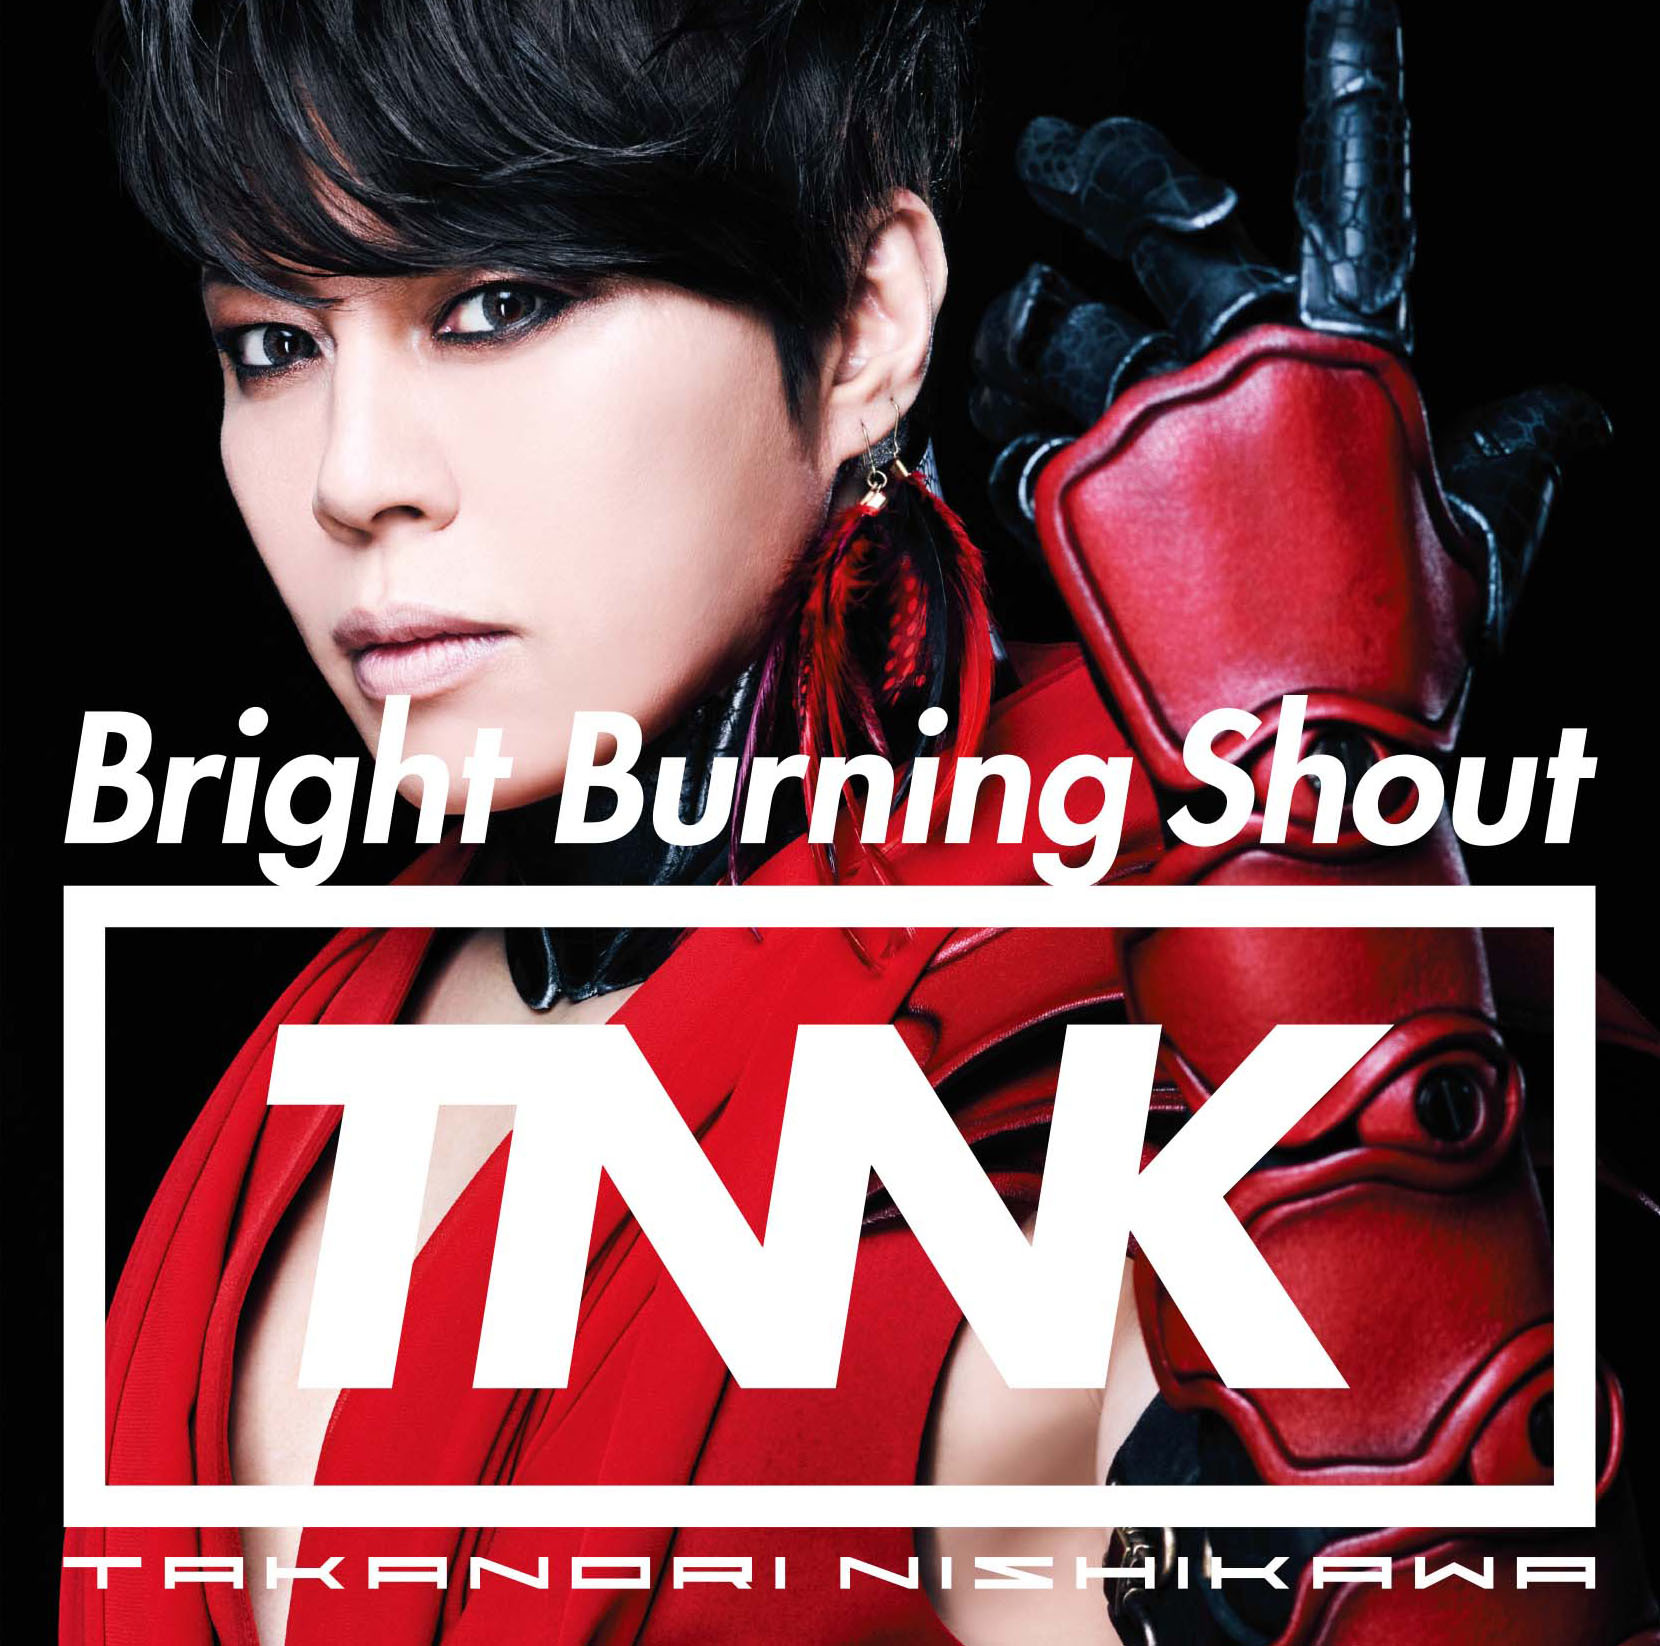 西川貴教 1st Single 「Bright Burning Shout」初回生産限定盤(CD+DVD)